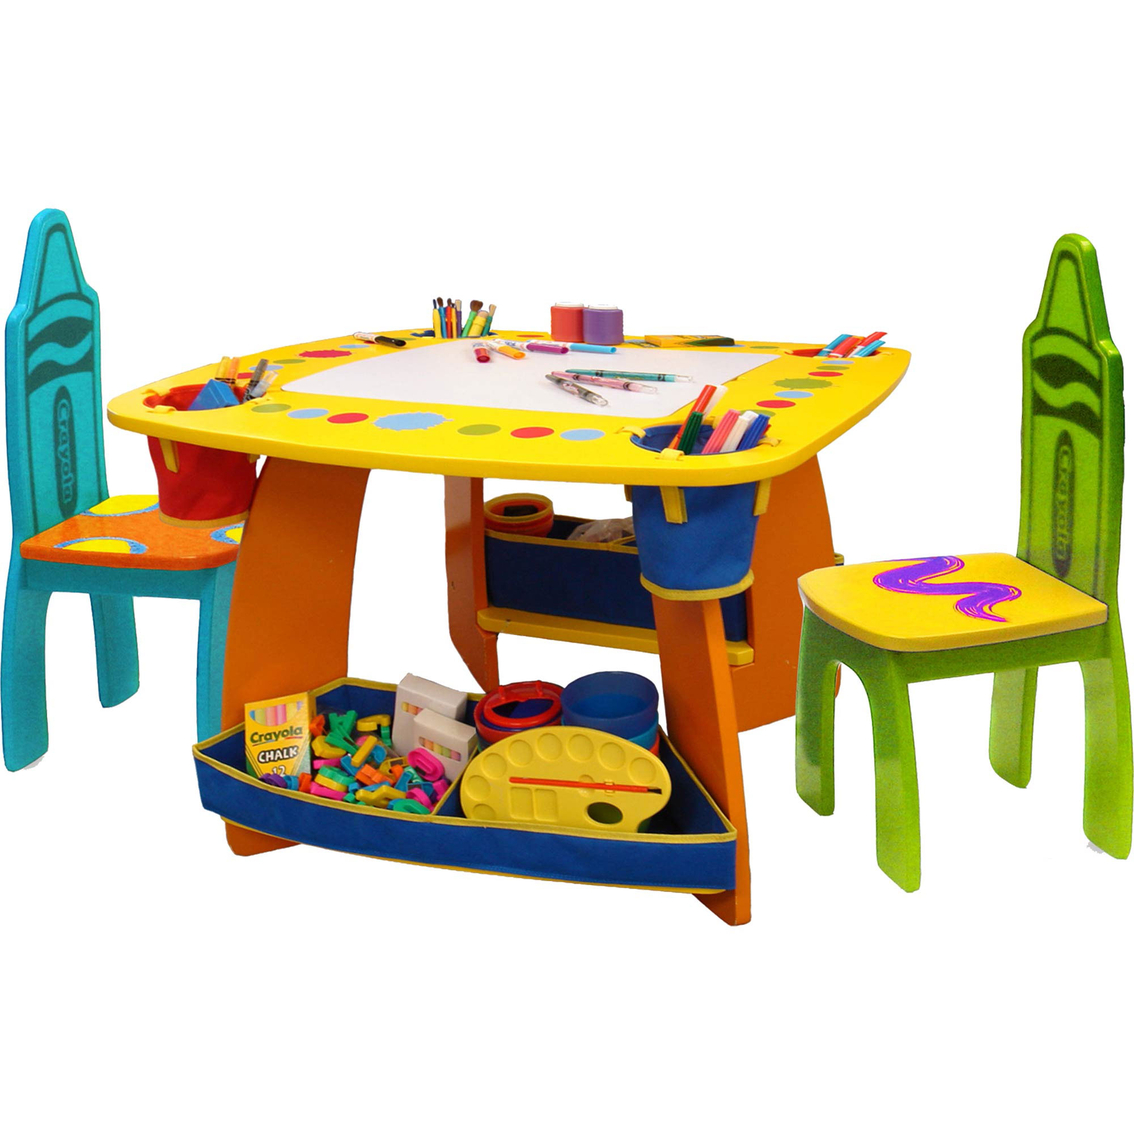 baby table and chairs reupholster chair cushion grow n up crayola set easels tables